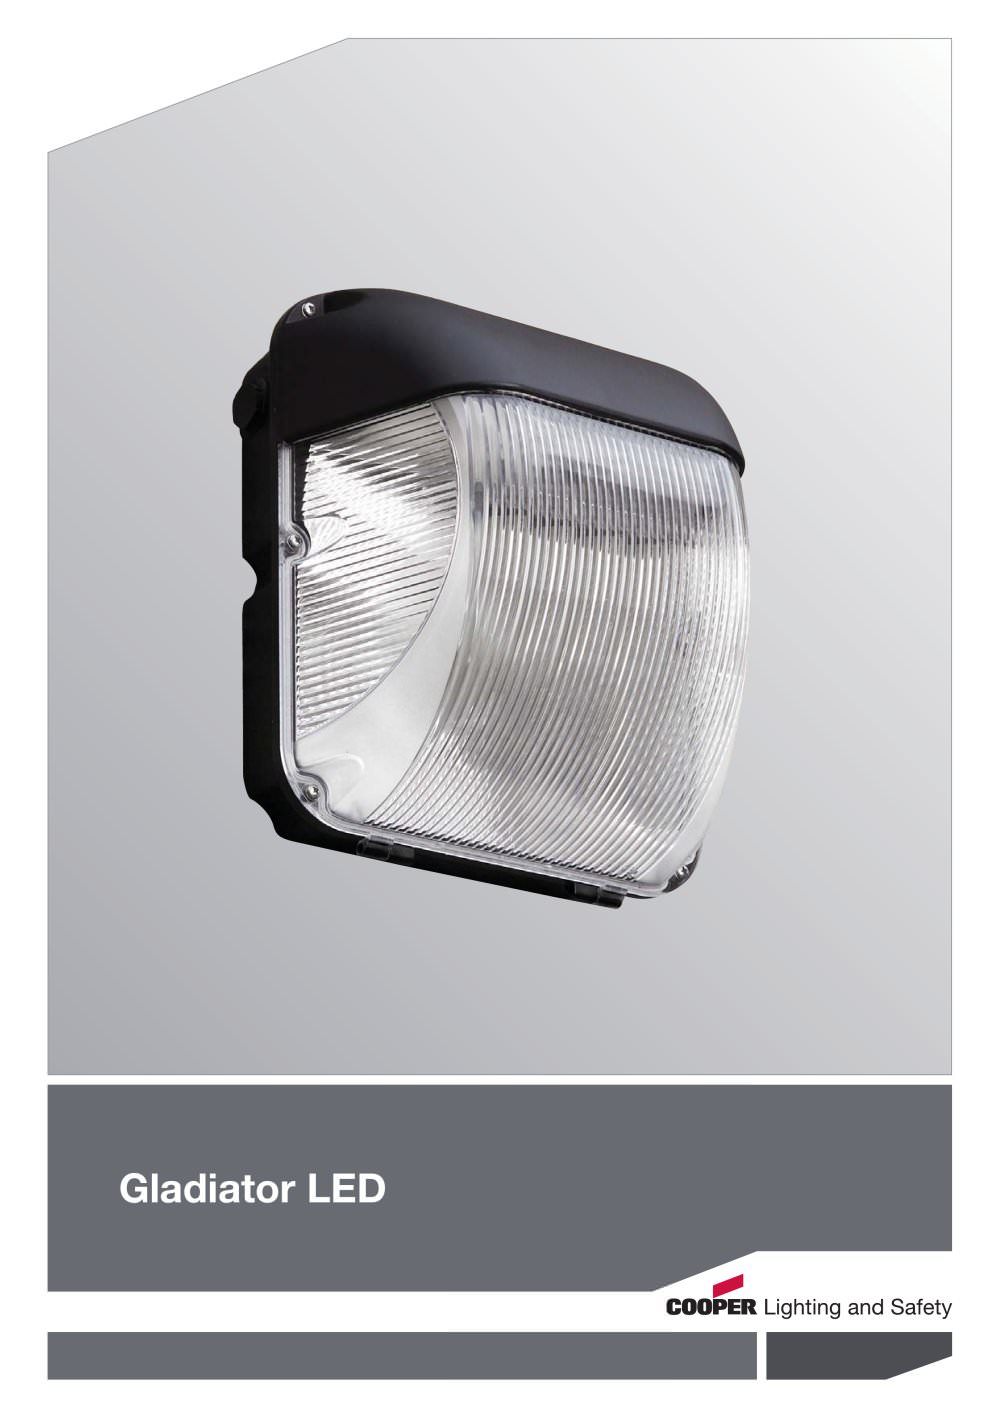 Gladiator led cooper lighting and safety pdf catalogue gladiator led 1 4 pages aloadofball